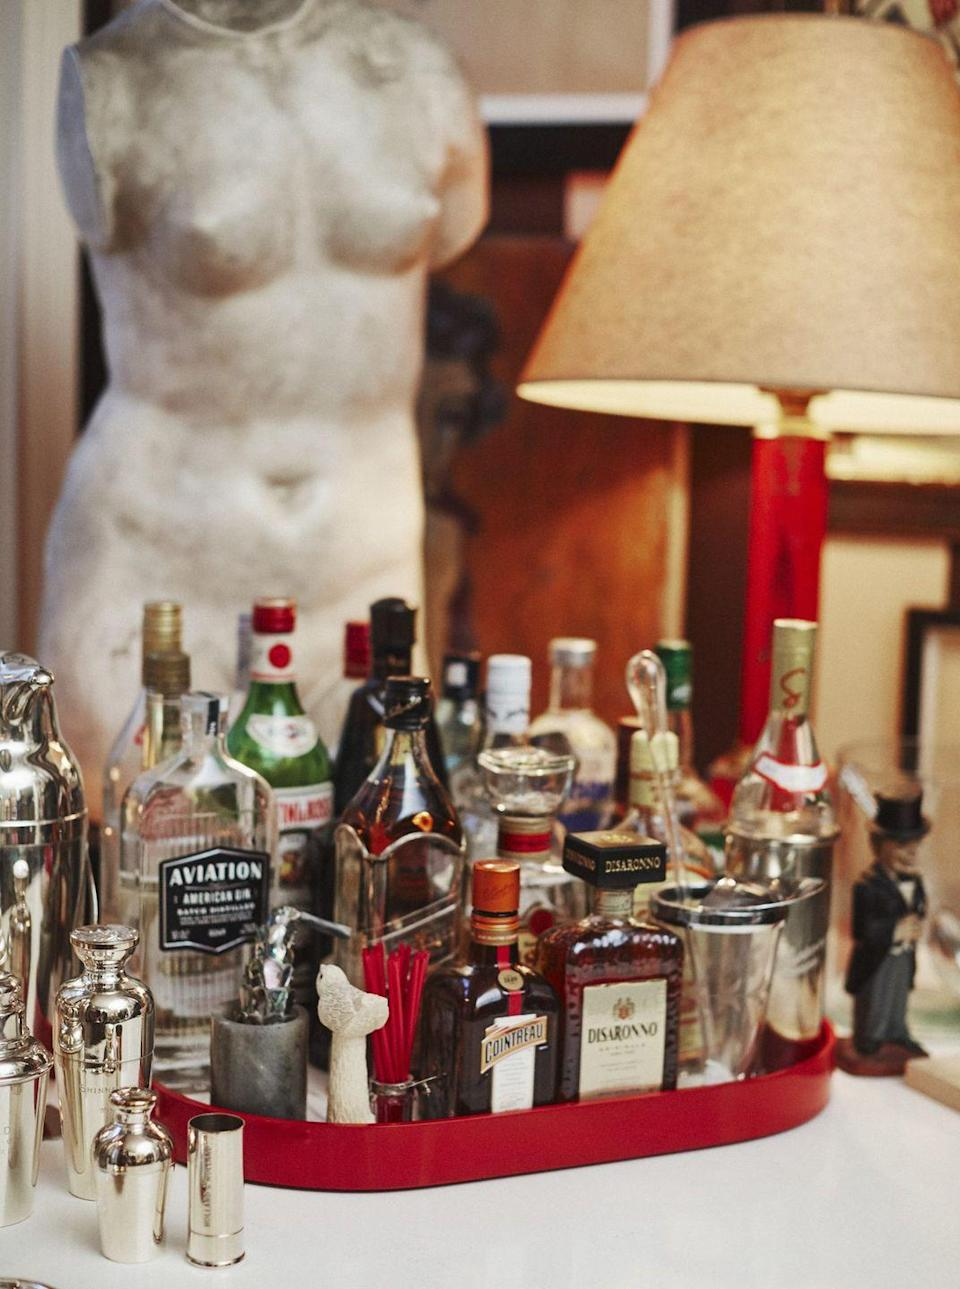 """<p>This artfully arranged bar scene by New York City designer <a href=""""http://milesredd.com"""" rel=""""nofollow noopener"""" target=""""_blank"""" data-ylk=""""slk:Miles Redd"""" class=""""link rapid-noclick-resp"""">Miles Redd</a> has us dreaming of cocktails by a crackling fire.</p><p>""""I've always been a big fan of drinks tables. I just love the way they look, and how they make a room feel. A bar just makes you comfortable. It's as if someone is telegraphing the message: <em>I am going to take care of you</em>,"""" he says. </p><p>Here, Redd uses a <a href=""""https://thelacquercompany.com/product/large-stacking-tray/"""" rel=""""nofollow noopener"""" target=""""_blank"""" data-ylk=""""slk:tray"""" class=""""link rapid-noclick-resp"""">tray</a> from his collection with <a href=""""https://thelacquercompany.com"""" rel=""""nofollow noopener"""" target=""""_blank"""" data-ylk=""""slk:the Lacquer Company"""" class=""""link rapid-noclick-resp"""">the Lacquer Company</a> to corral bottles, while a bust offers height and dimension to the scene. </p><p>""""As for what I put on them, the more elaborate the better, with all the usual suspects, of course. I do love the small bottles of mixers lined up like soldiers, and if you have the space, an array of snacks is always nice,"""" says Redd. </p><p>""""I love smoked almonds and various crisps, but do mind the packaging. No one wants to see a bag of Doritos. It's style over substance. If you do have to have a bag of chips, put them in small straw basket, like you see in a hotel mini bar.""""</p>"""